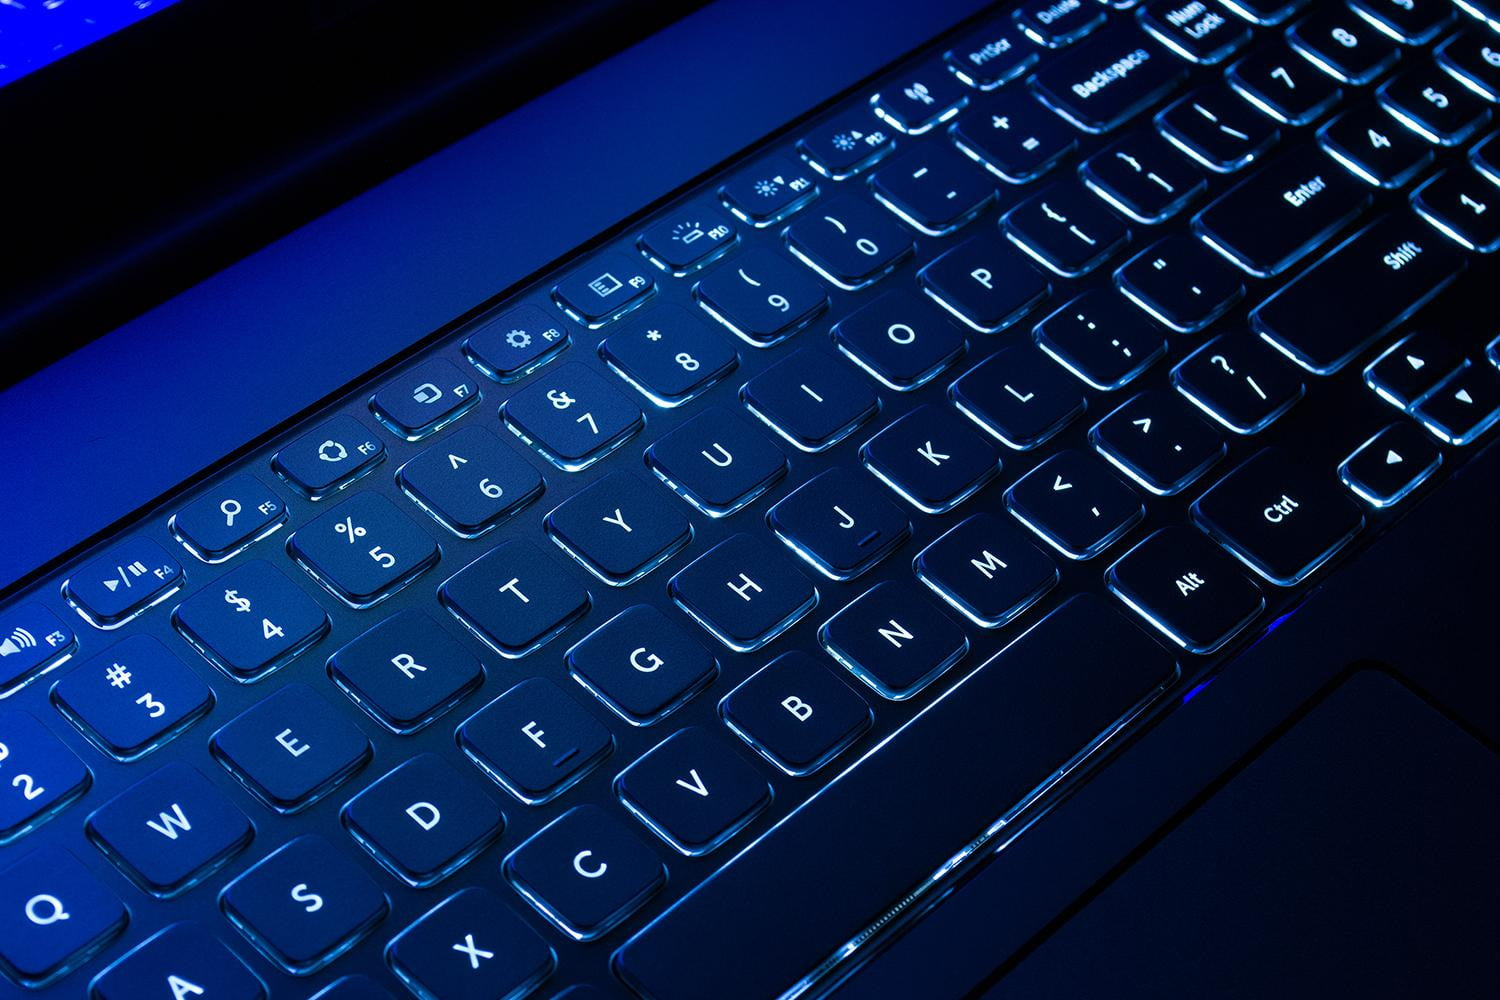 Dell Inspiron 15 7000 series review | Digital Trends